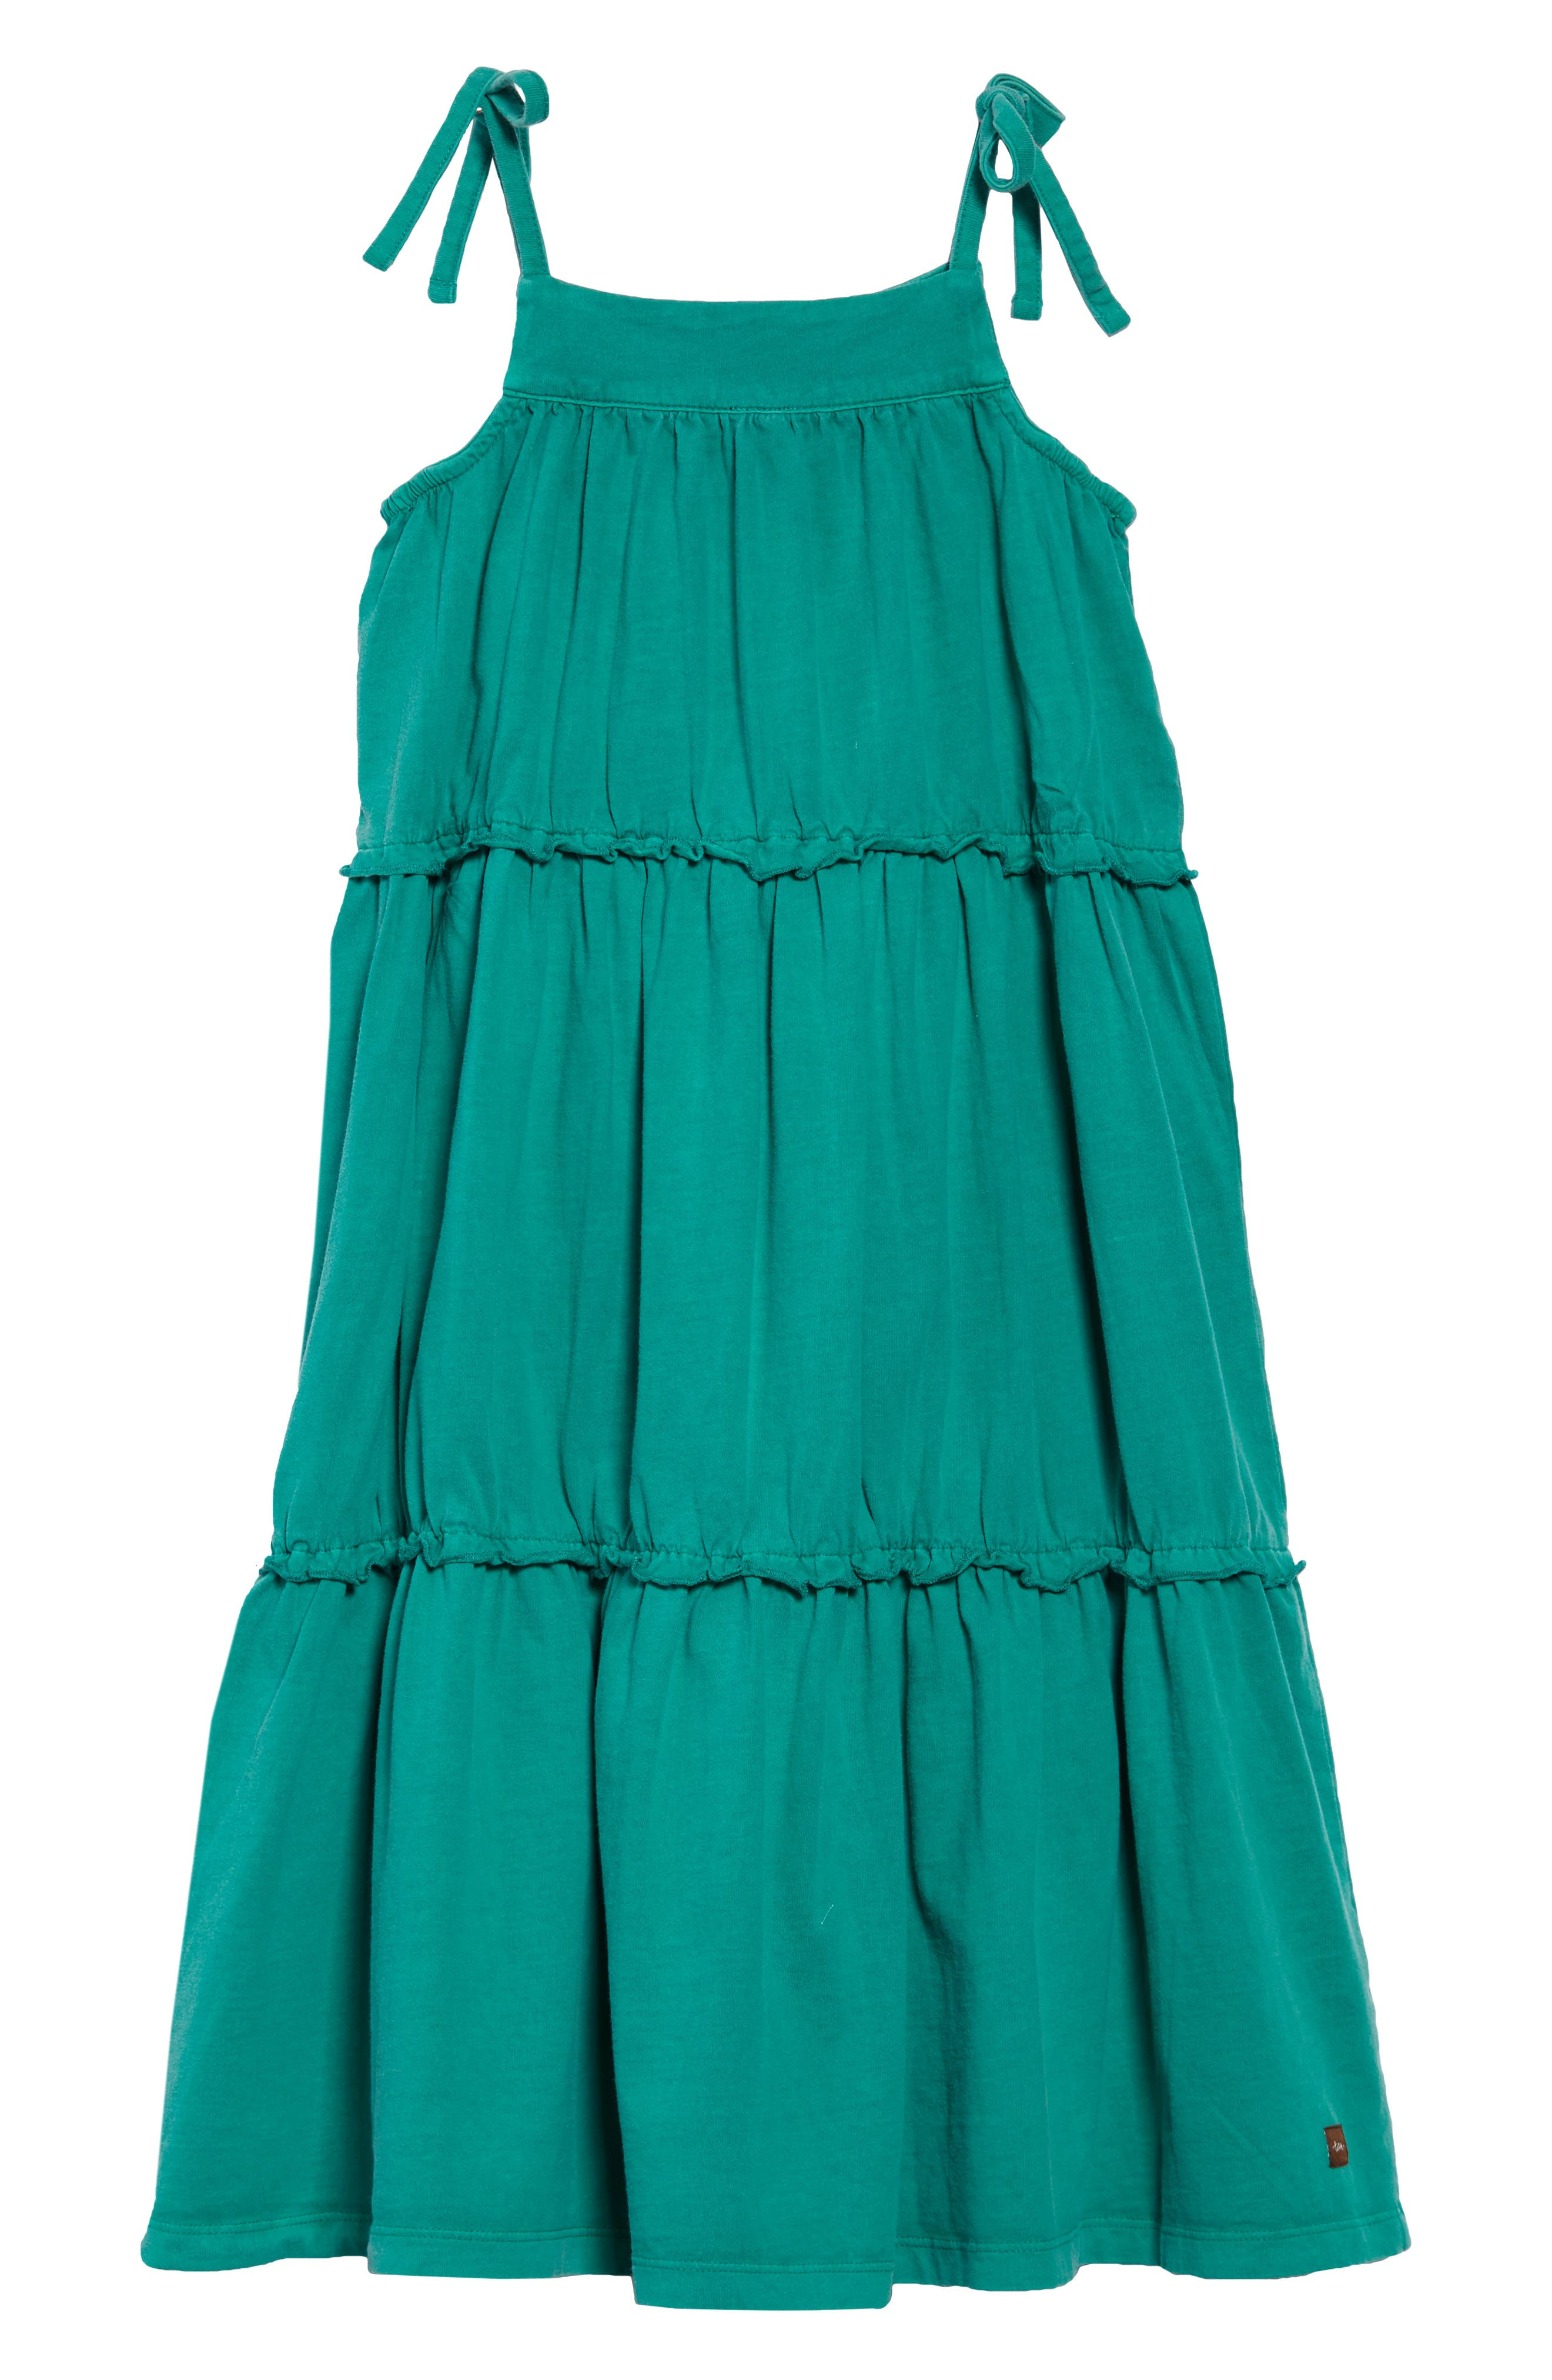 Tiered Sundress,                             Alternate thumbnail 2, color,                             365